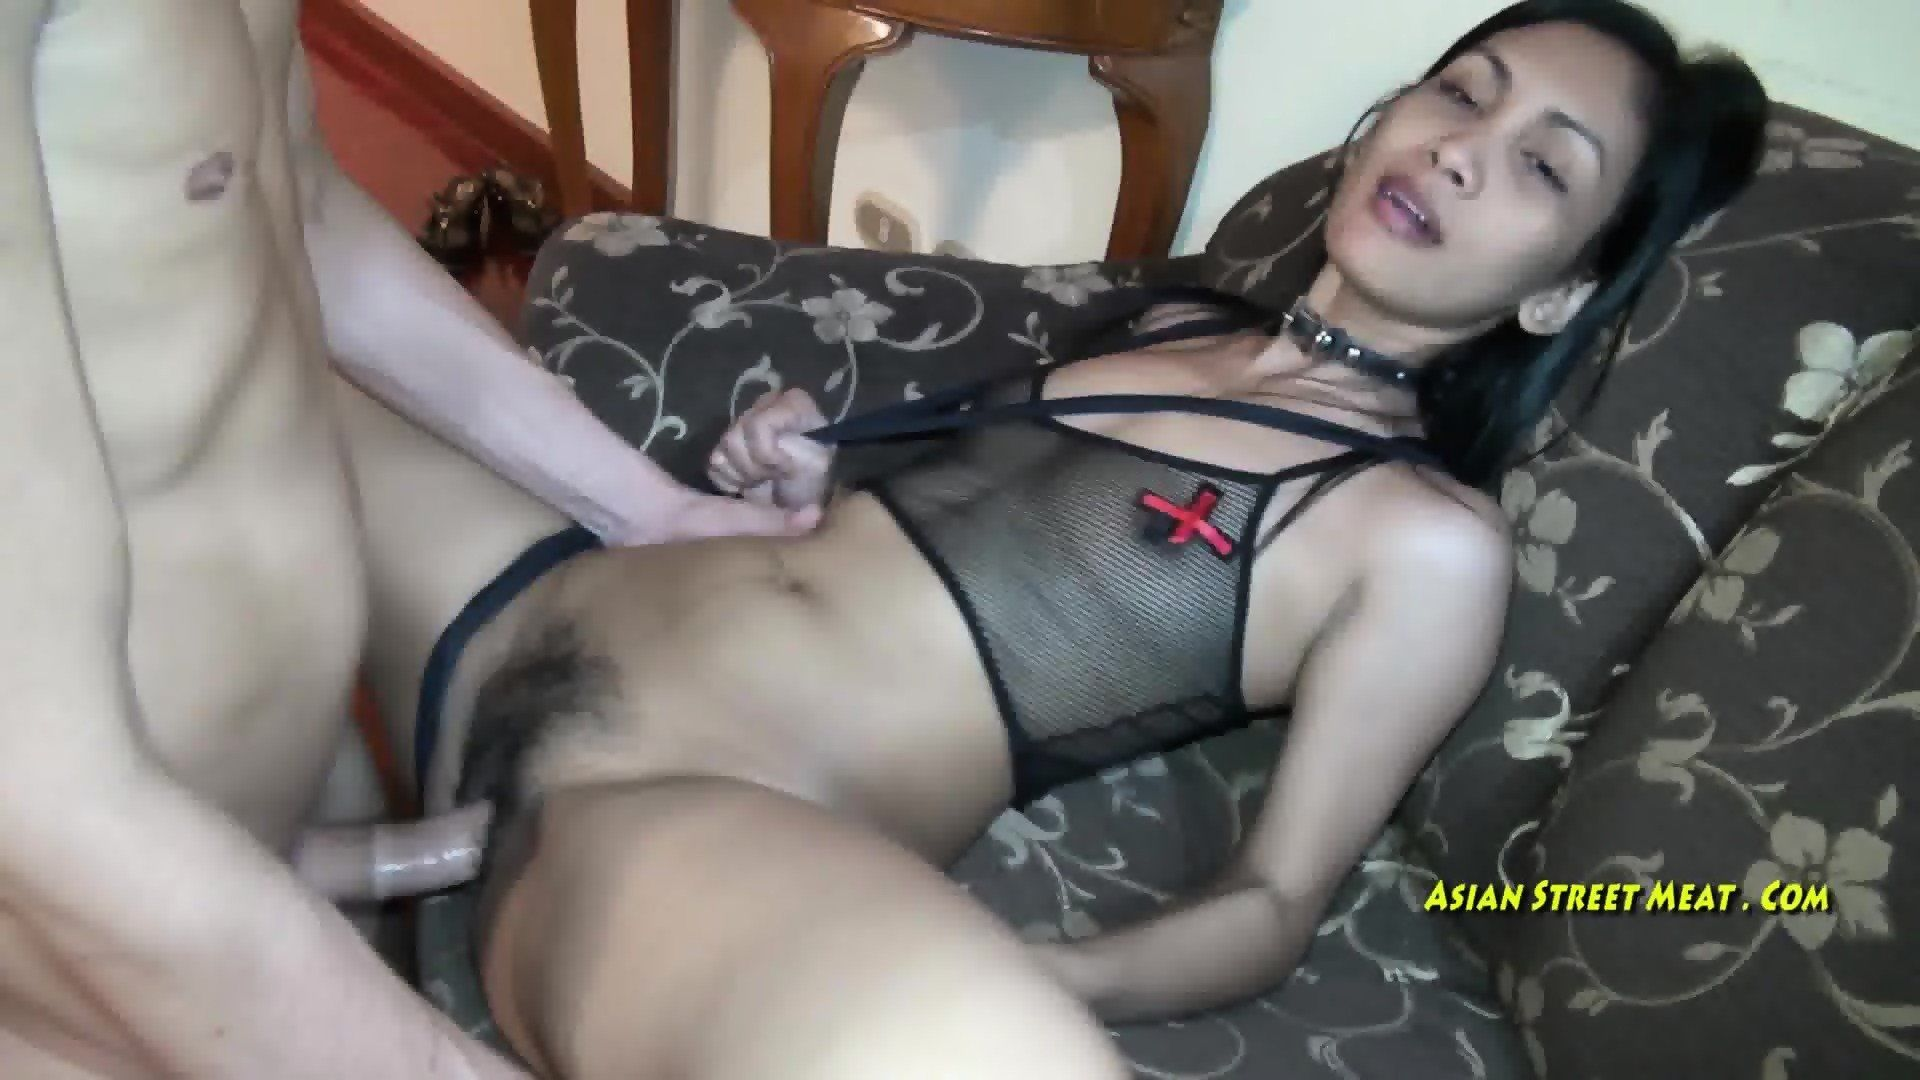 Lord P. S. reccomend Thai street meat vaginal cumshot